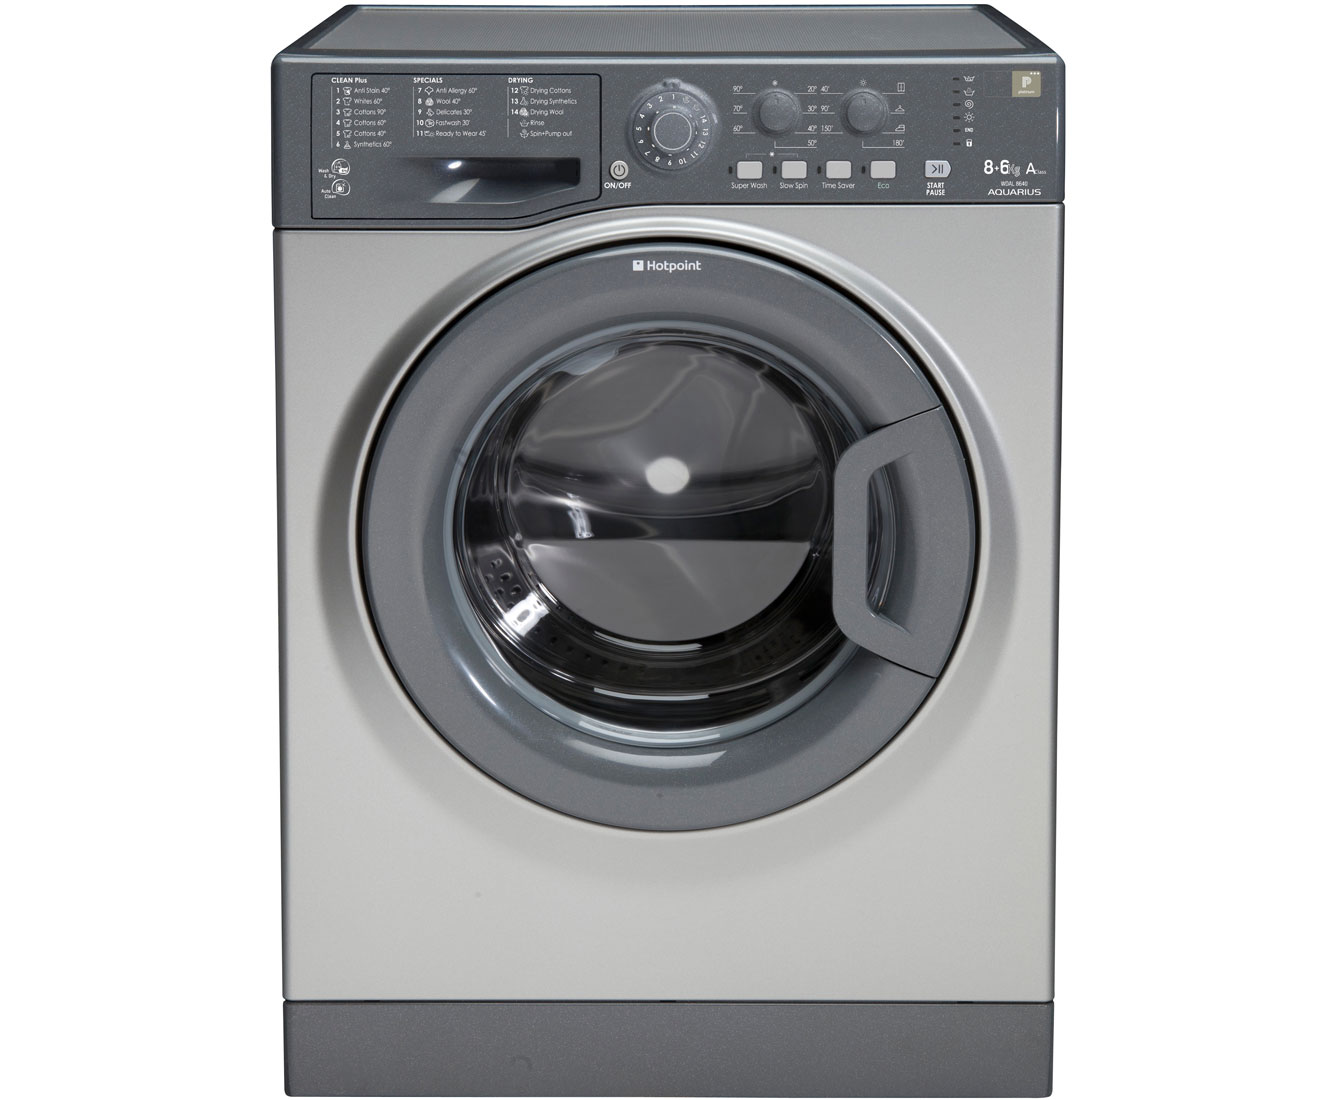 Hotpoint WDAL8640G 8Kg / 6Kg Washer Dryer with 1400 rpm - Graphite